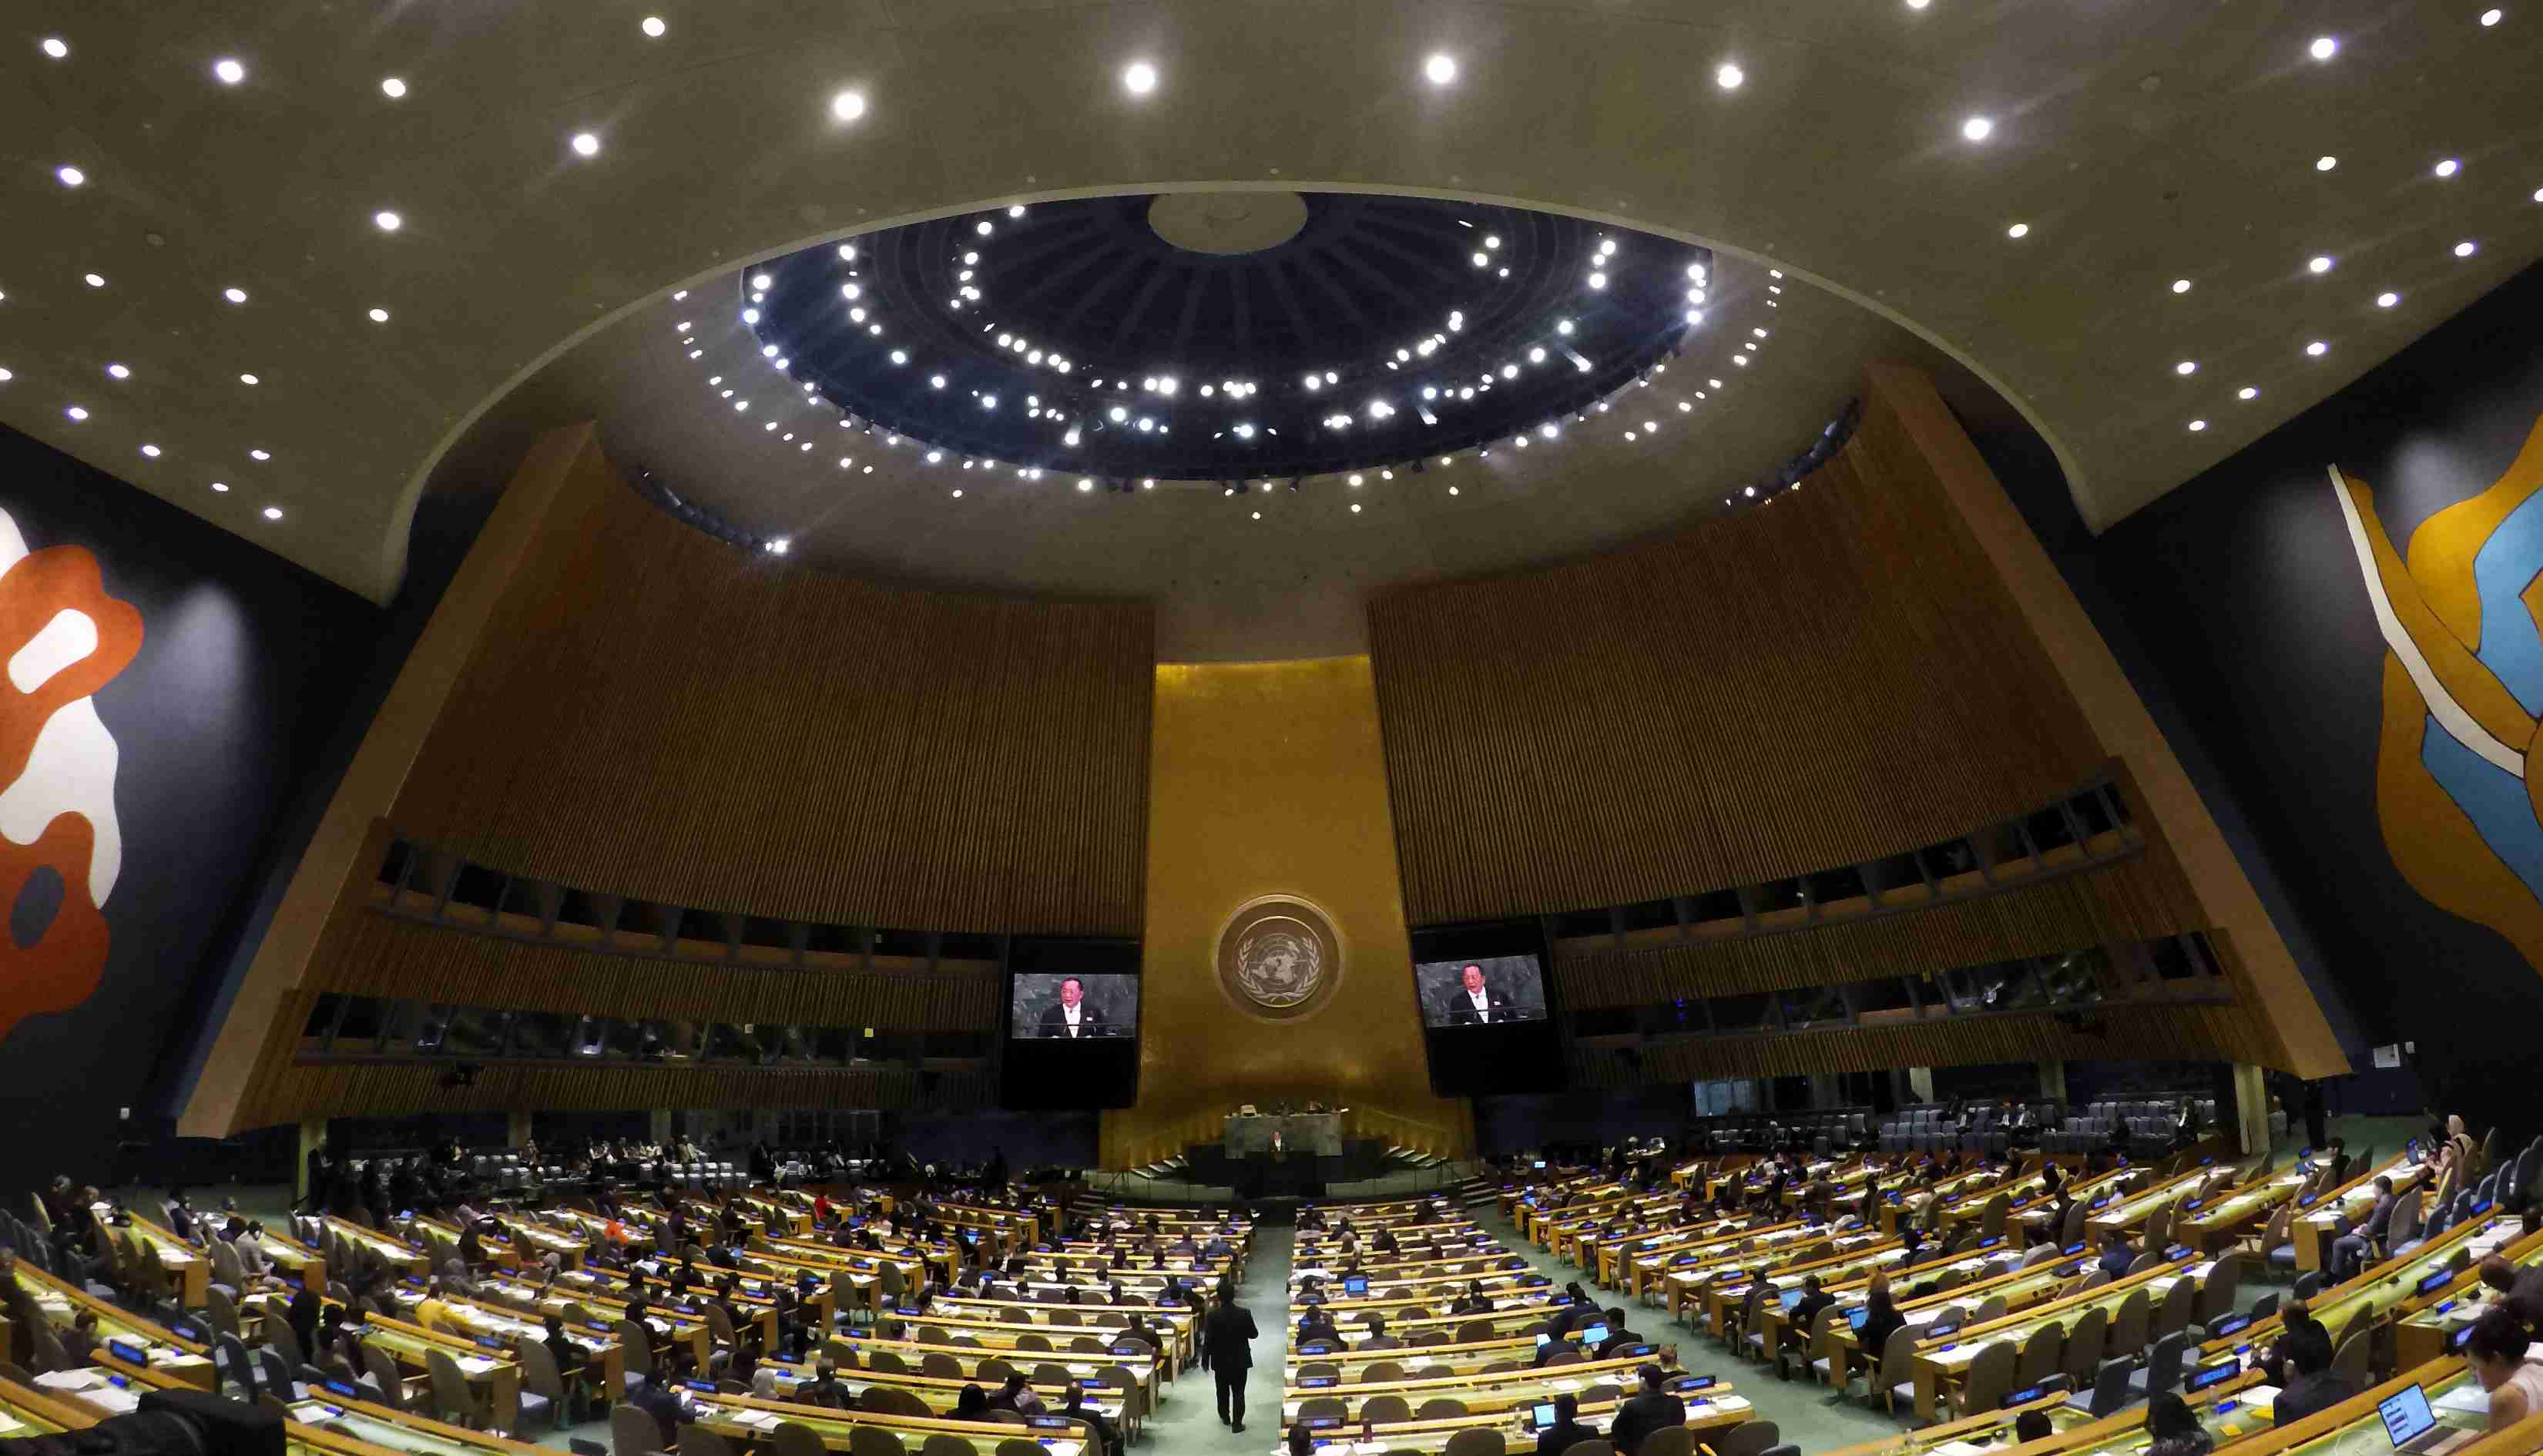 global_un_general_assembly_001